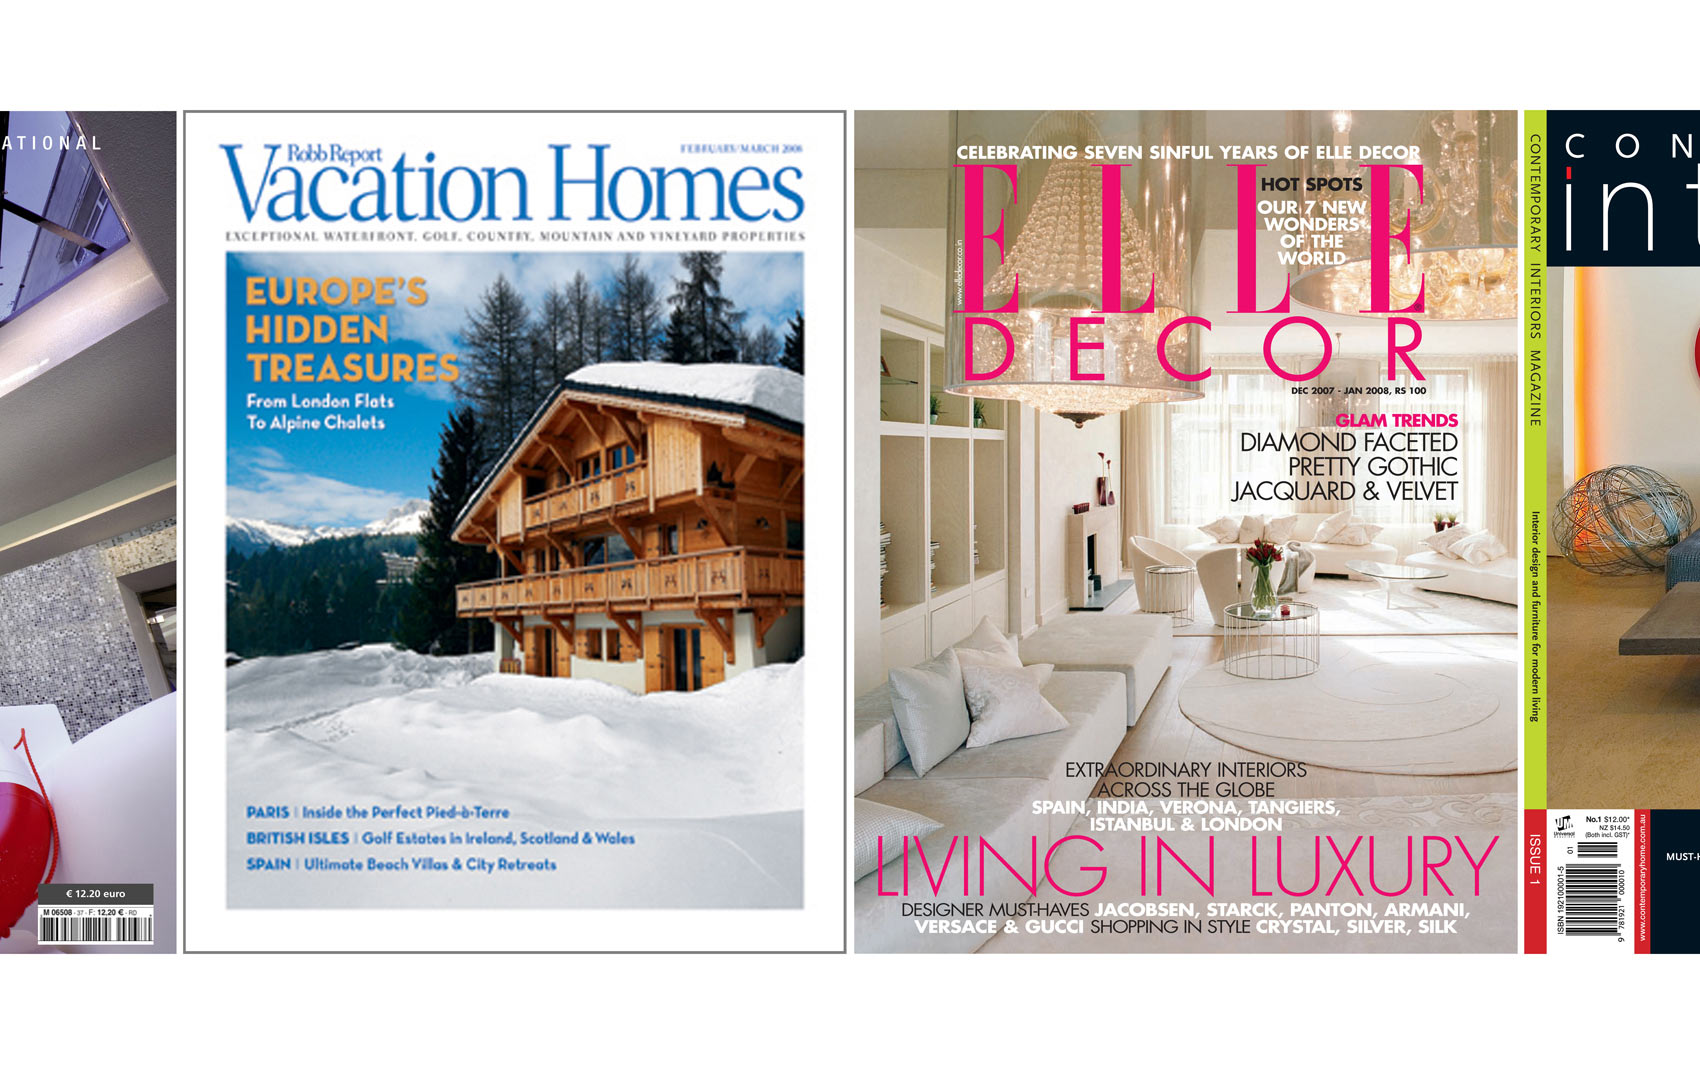 Vacation Homes and Elle Decor Magazine